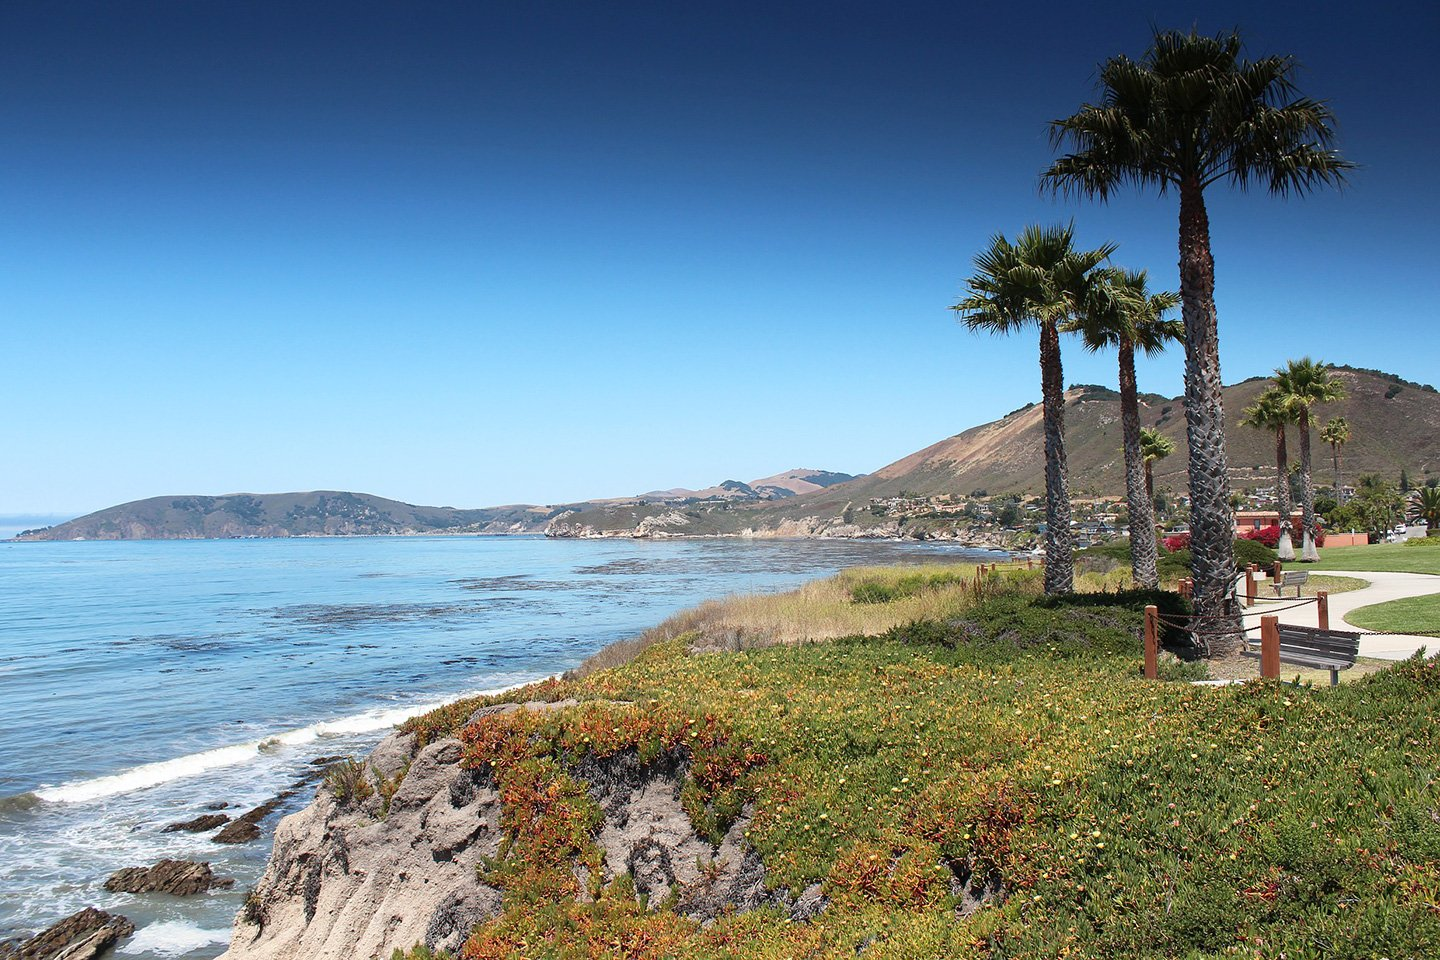 Pismo beach with wheelchair accessible walkway